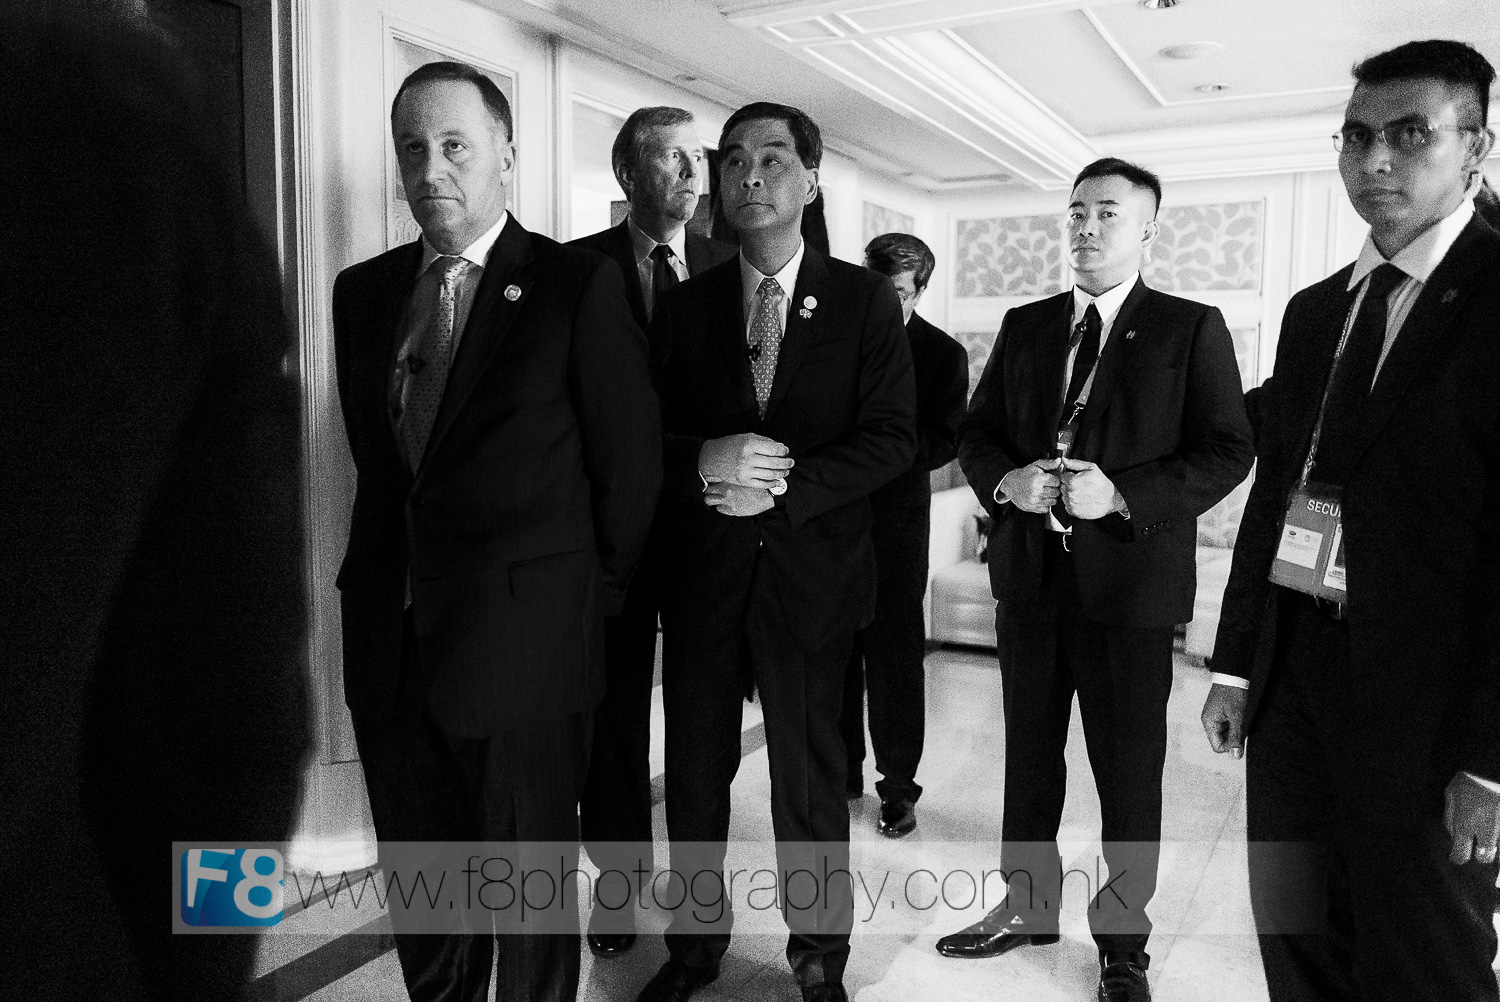 Prime Minister Of New Zealand mr john key (fronT left) and chief executive of hong kong mr CY LEUNG preparing to go on stage.  their two bodyguards keeping an eye on me whilst i work in the shadows...